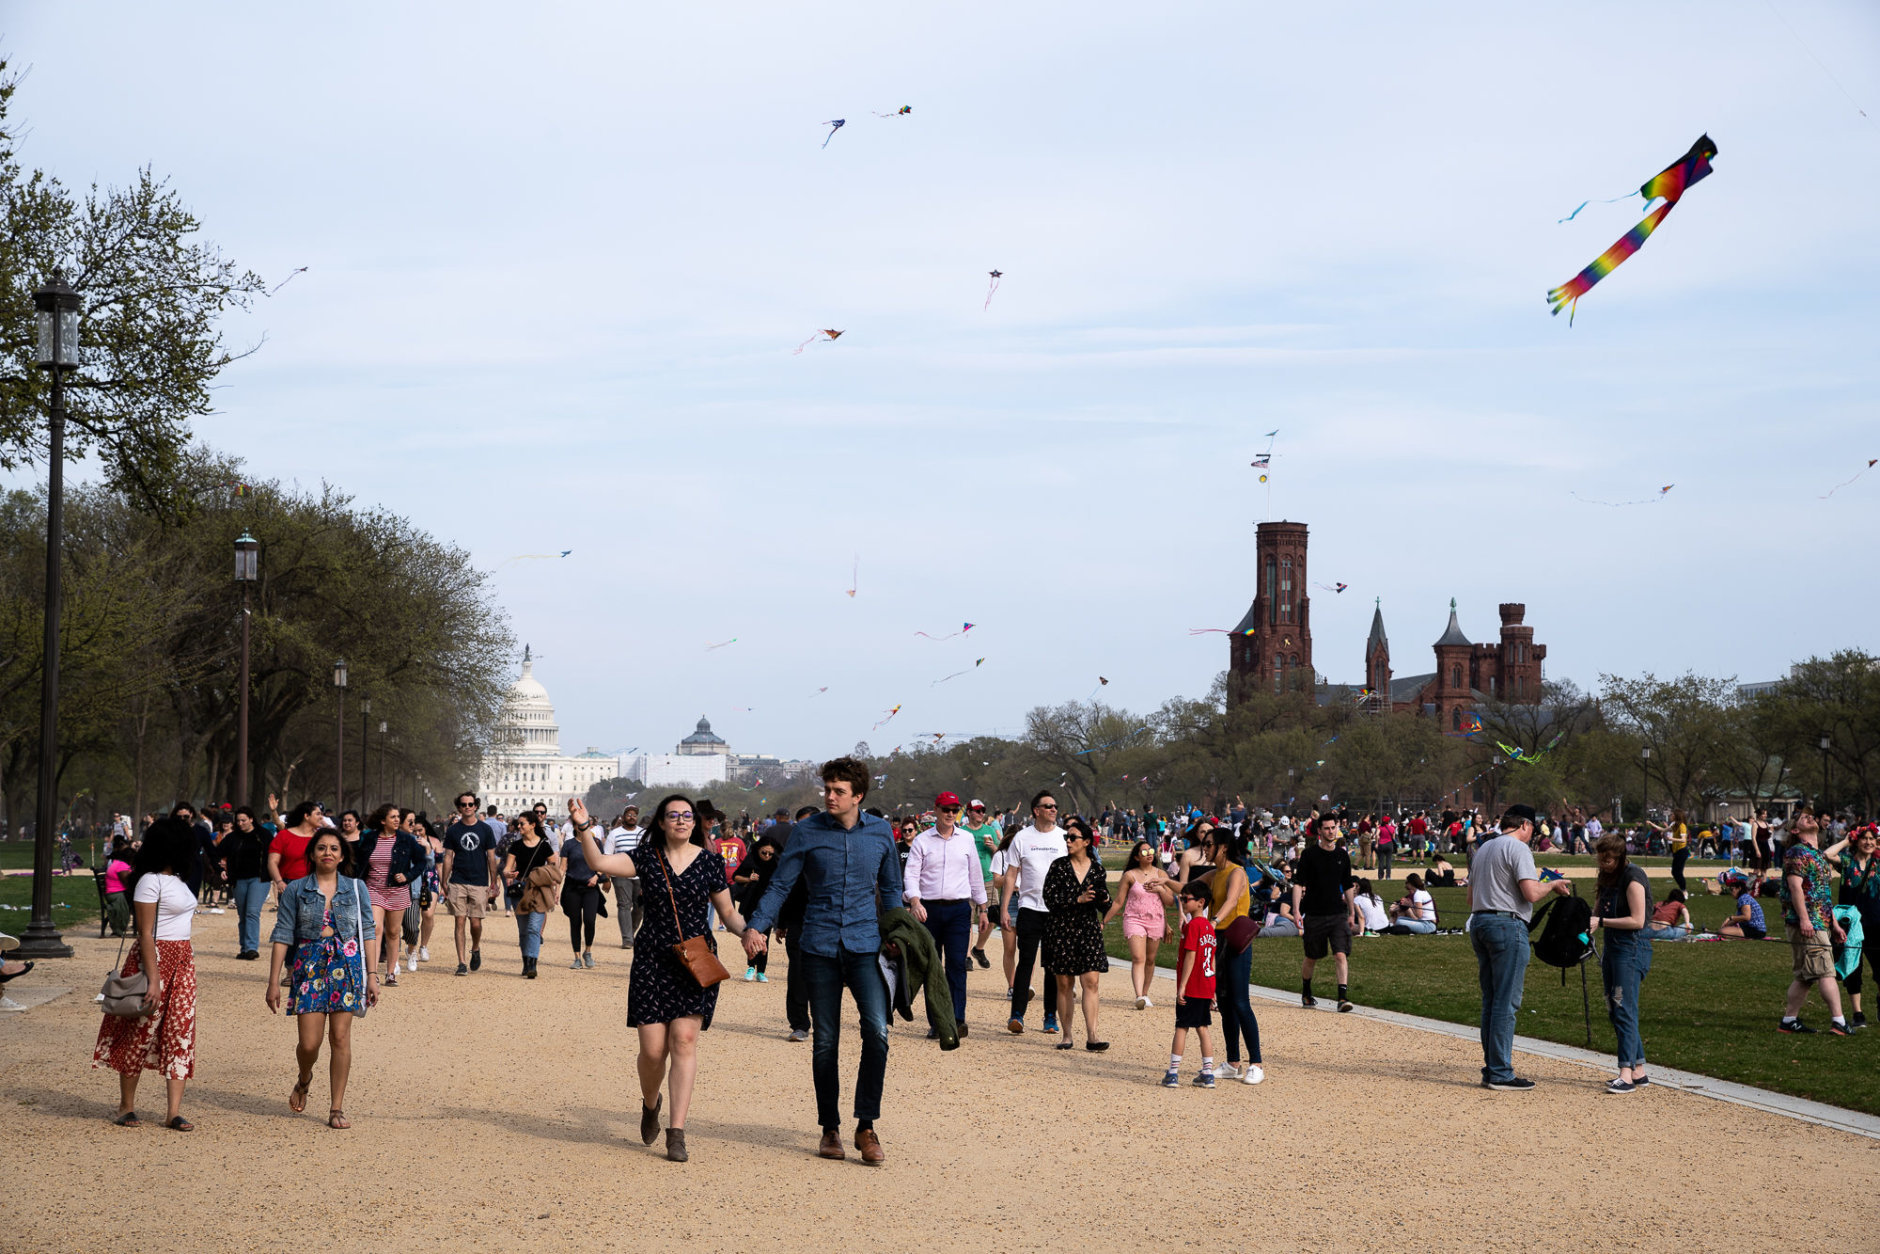 Kites fly over the National Mall on March 30. The yearly kite festival brings thousands to the Mall on its own — and 2019's festival coincided with the days leading up to peak bloom for the cherry blossoms, itself one of D.C.'s most popular days for tourists. (WTOP/Alejandro Alvarez)